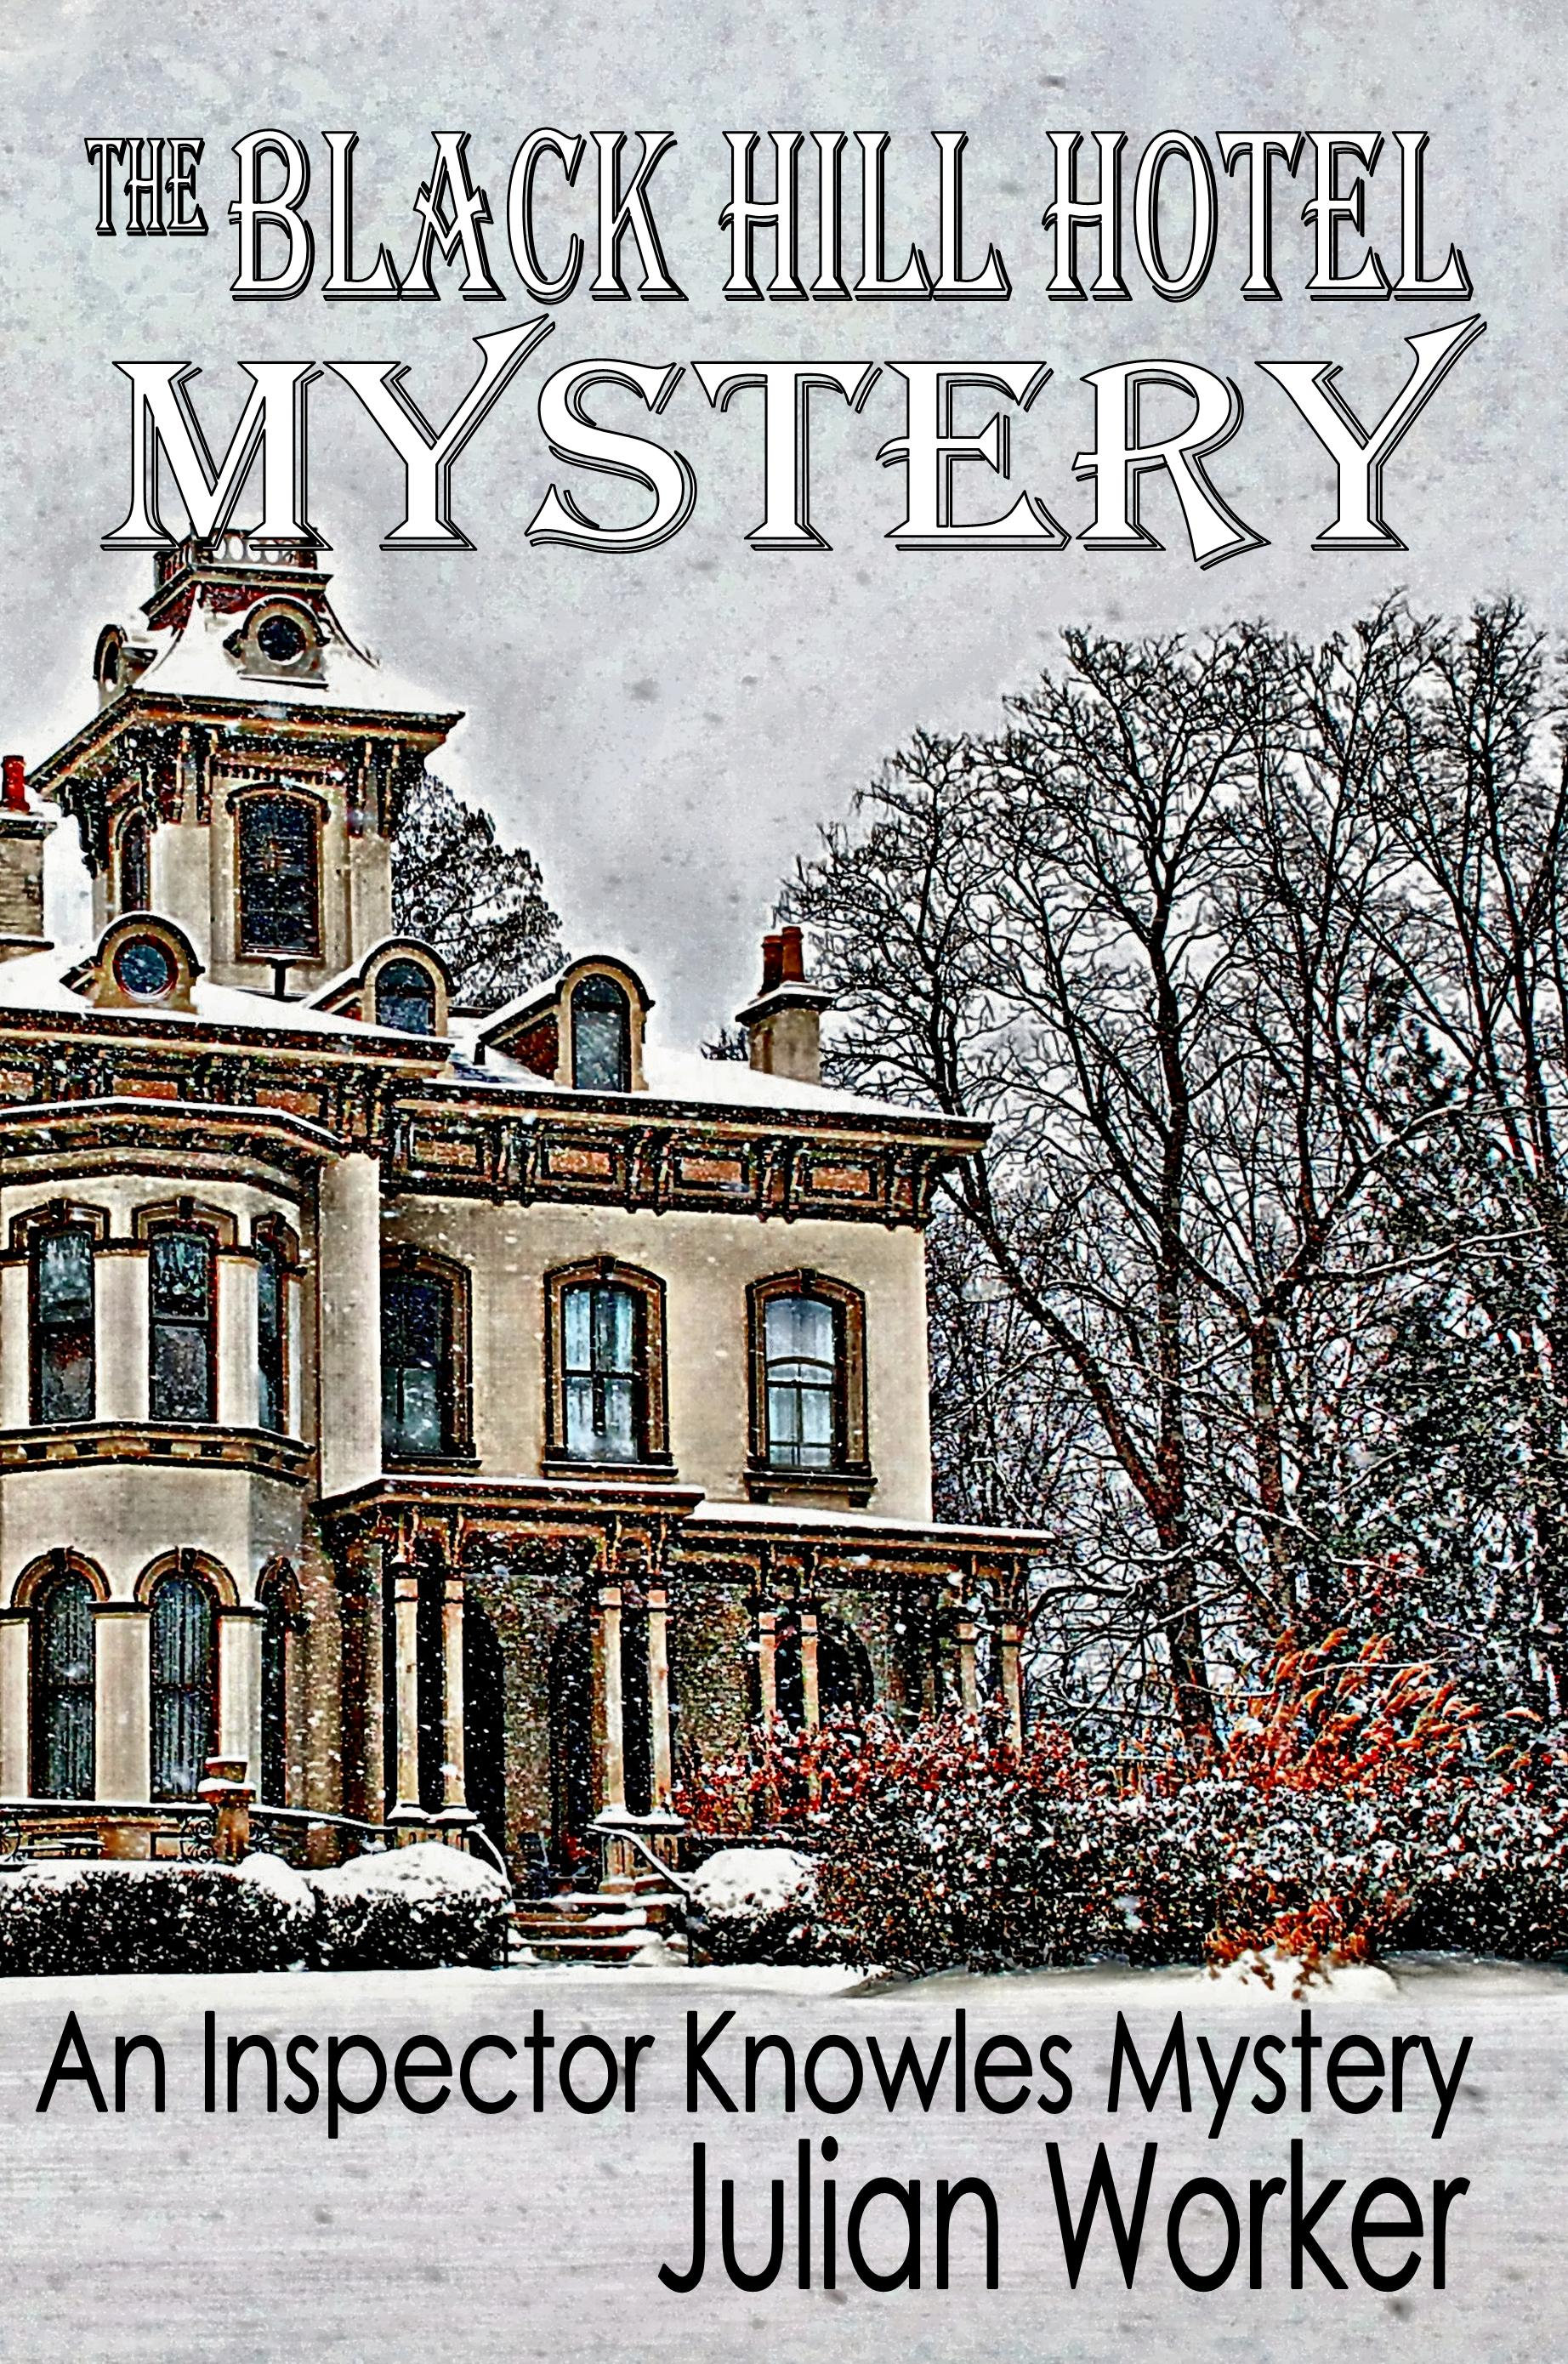 The Black Hill Hotel Mystery – 39